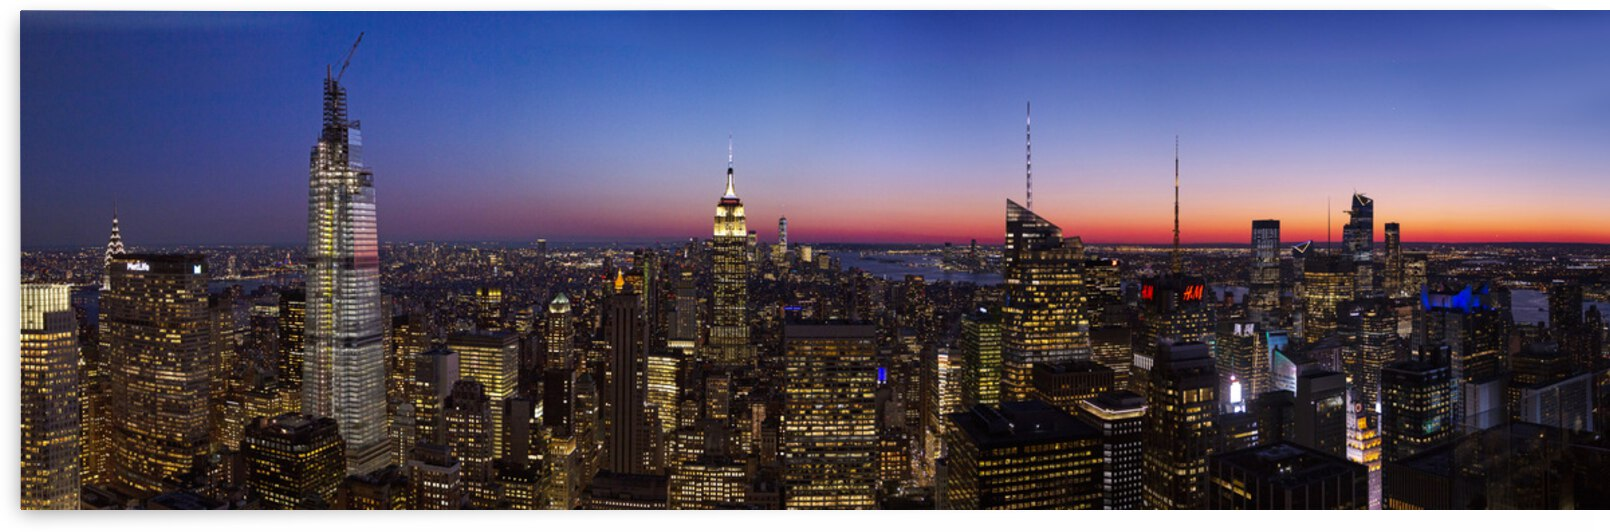 NYC Skyline at Sunset by Evan Petty Photography